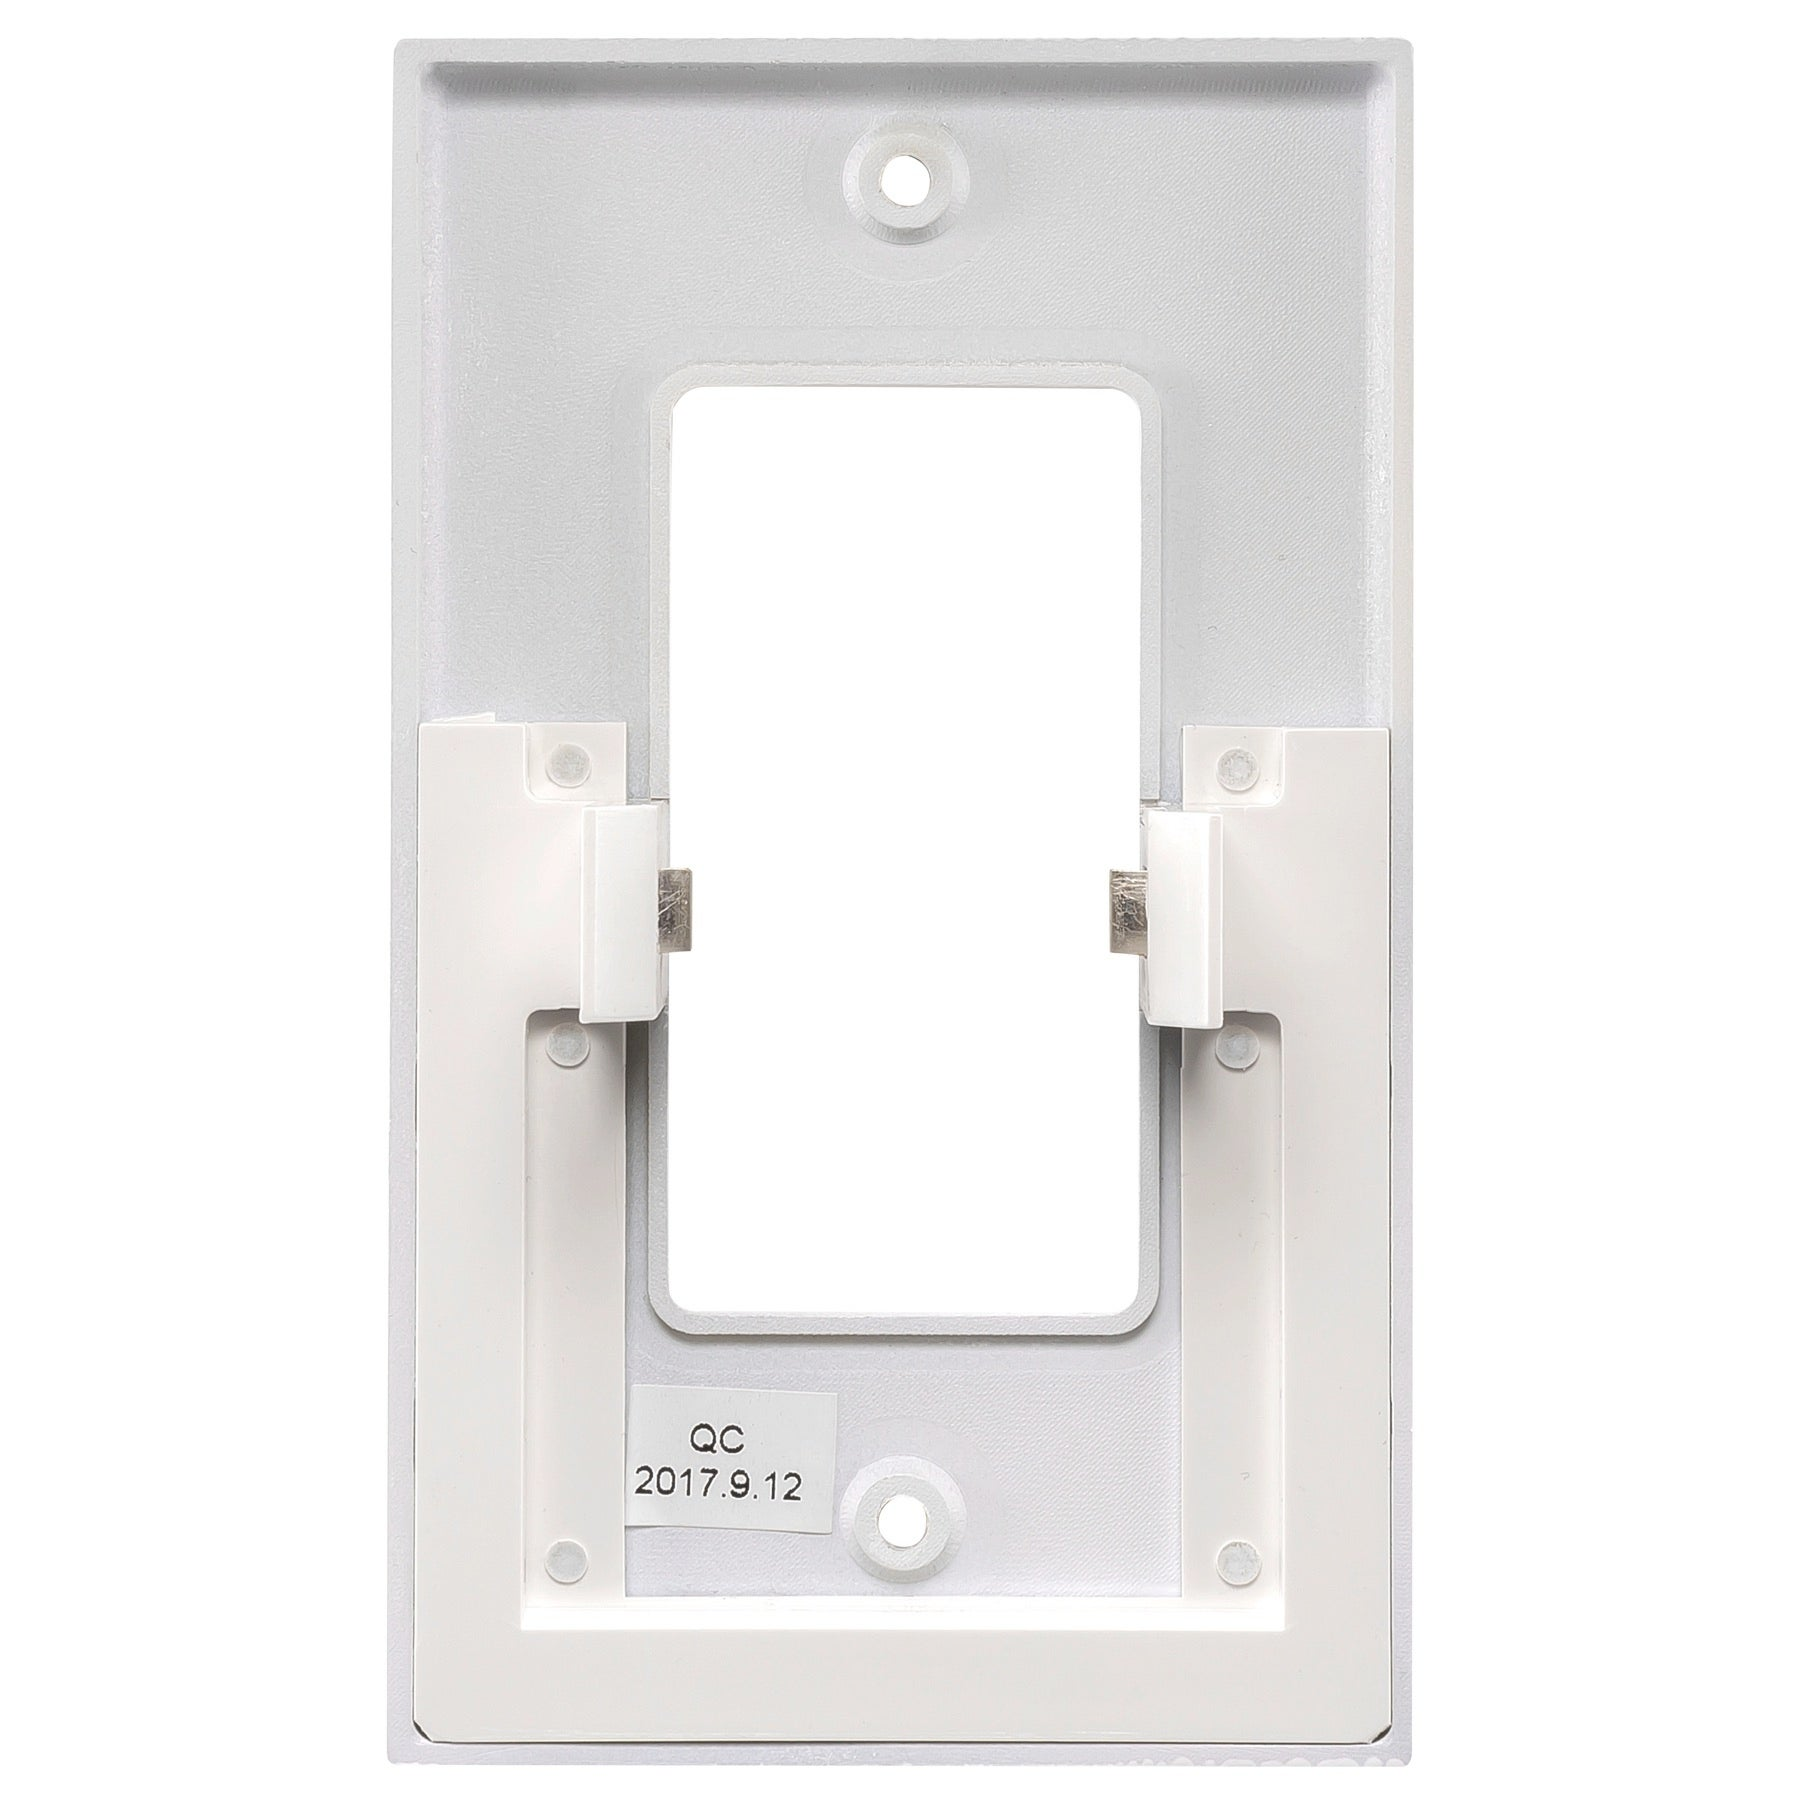 Stunning wall outlet switch images electrical circuit diagram powerglow wall outlet plate 3 led night light onoff switch white mozeypictures Choice Image